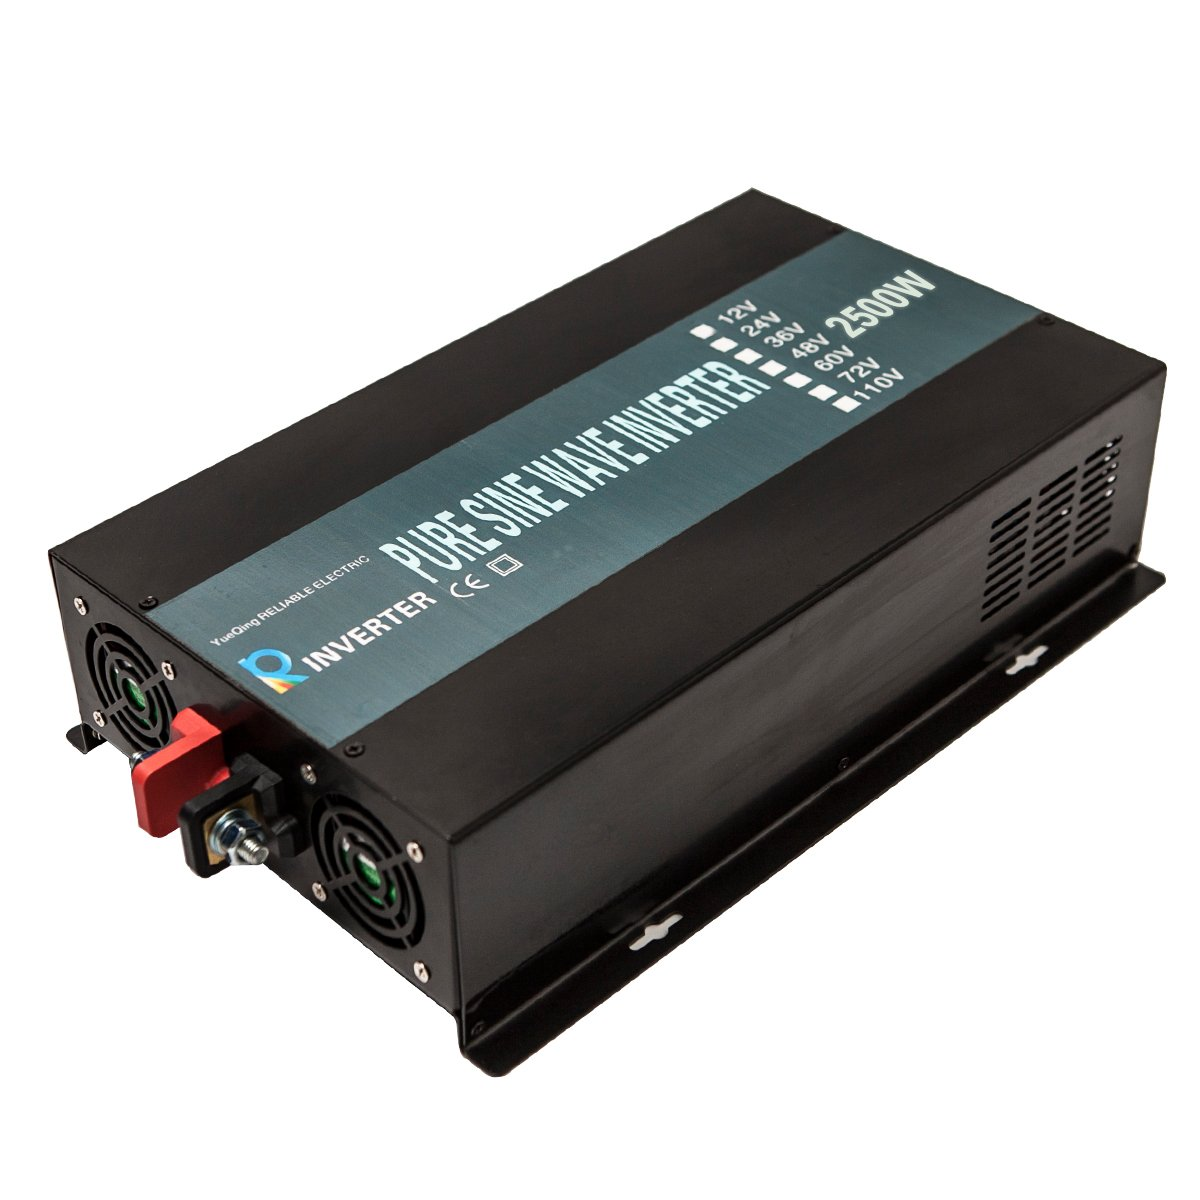 Reliable 2500W High Compact Pure Sine Wave Inverter Dc to Ac Power Converter For Home Solar Power System (Black Iron) by WZRELB (Image #4)